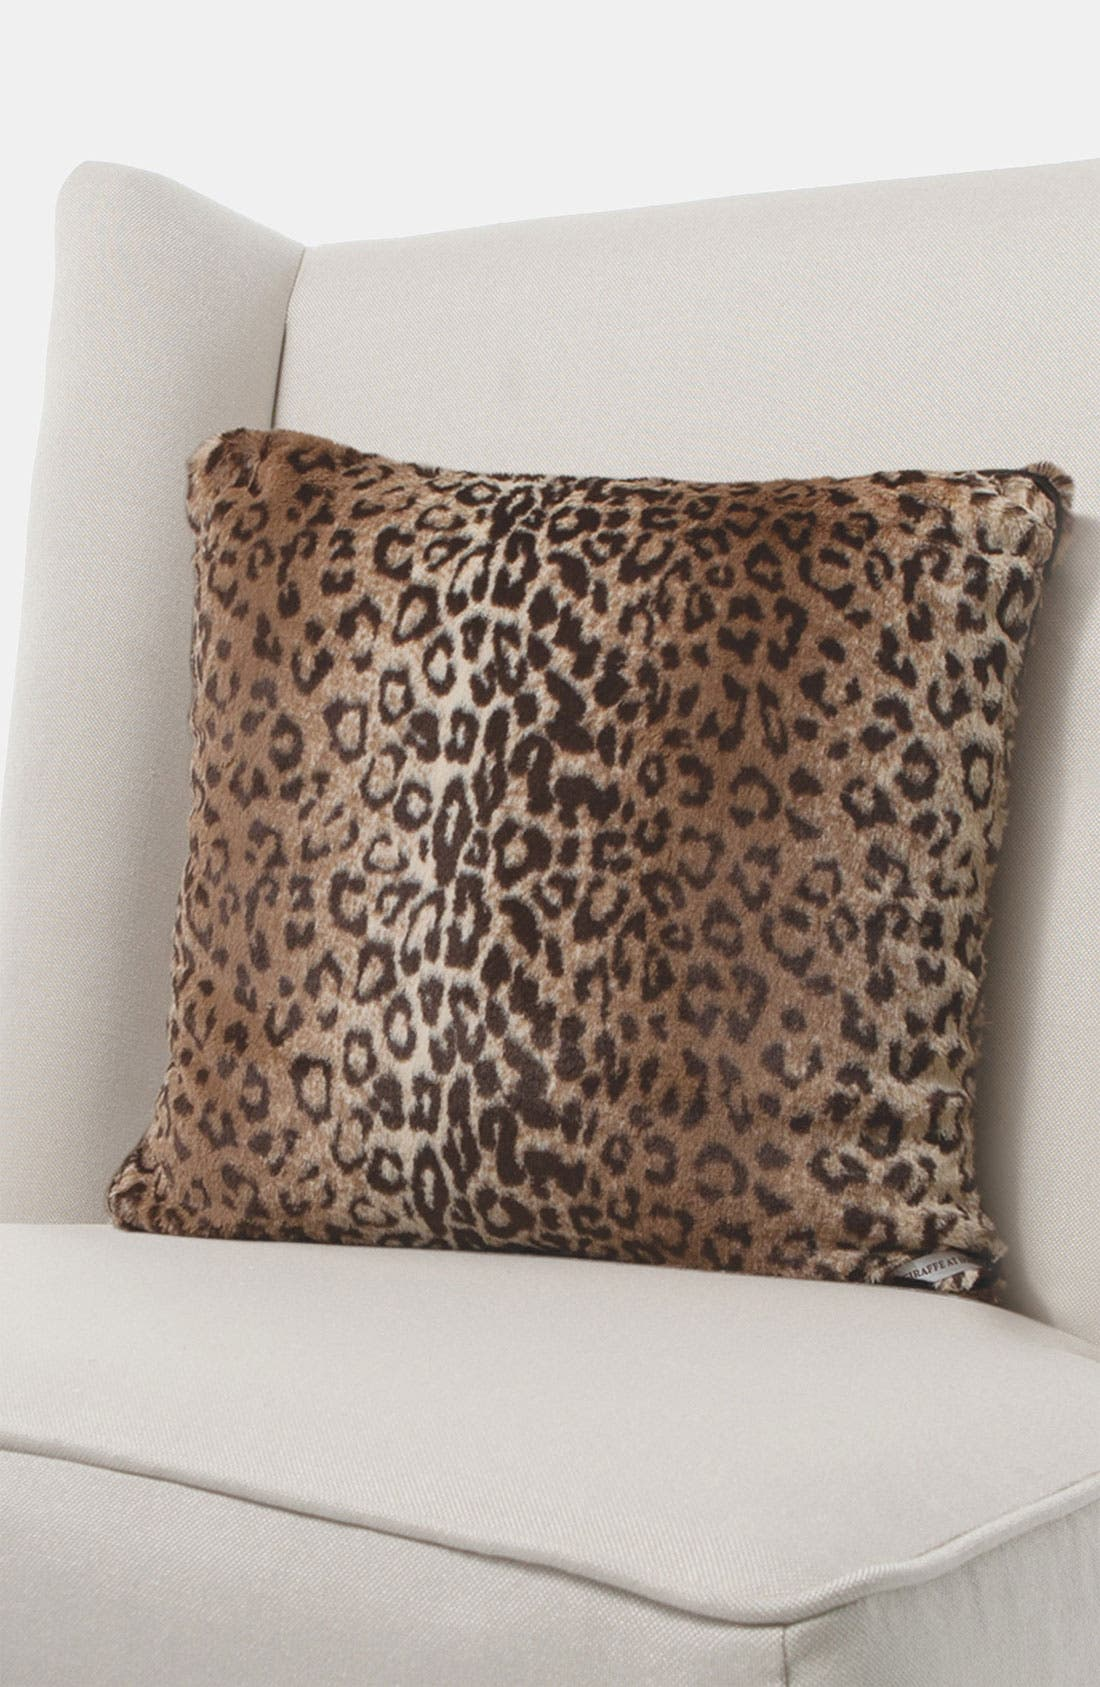 'Luxe Leopard' Throw Pillow,                         Main,                         color, Espresso